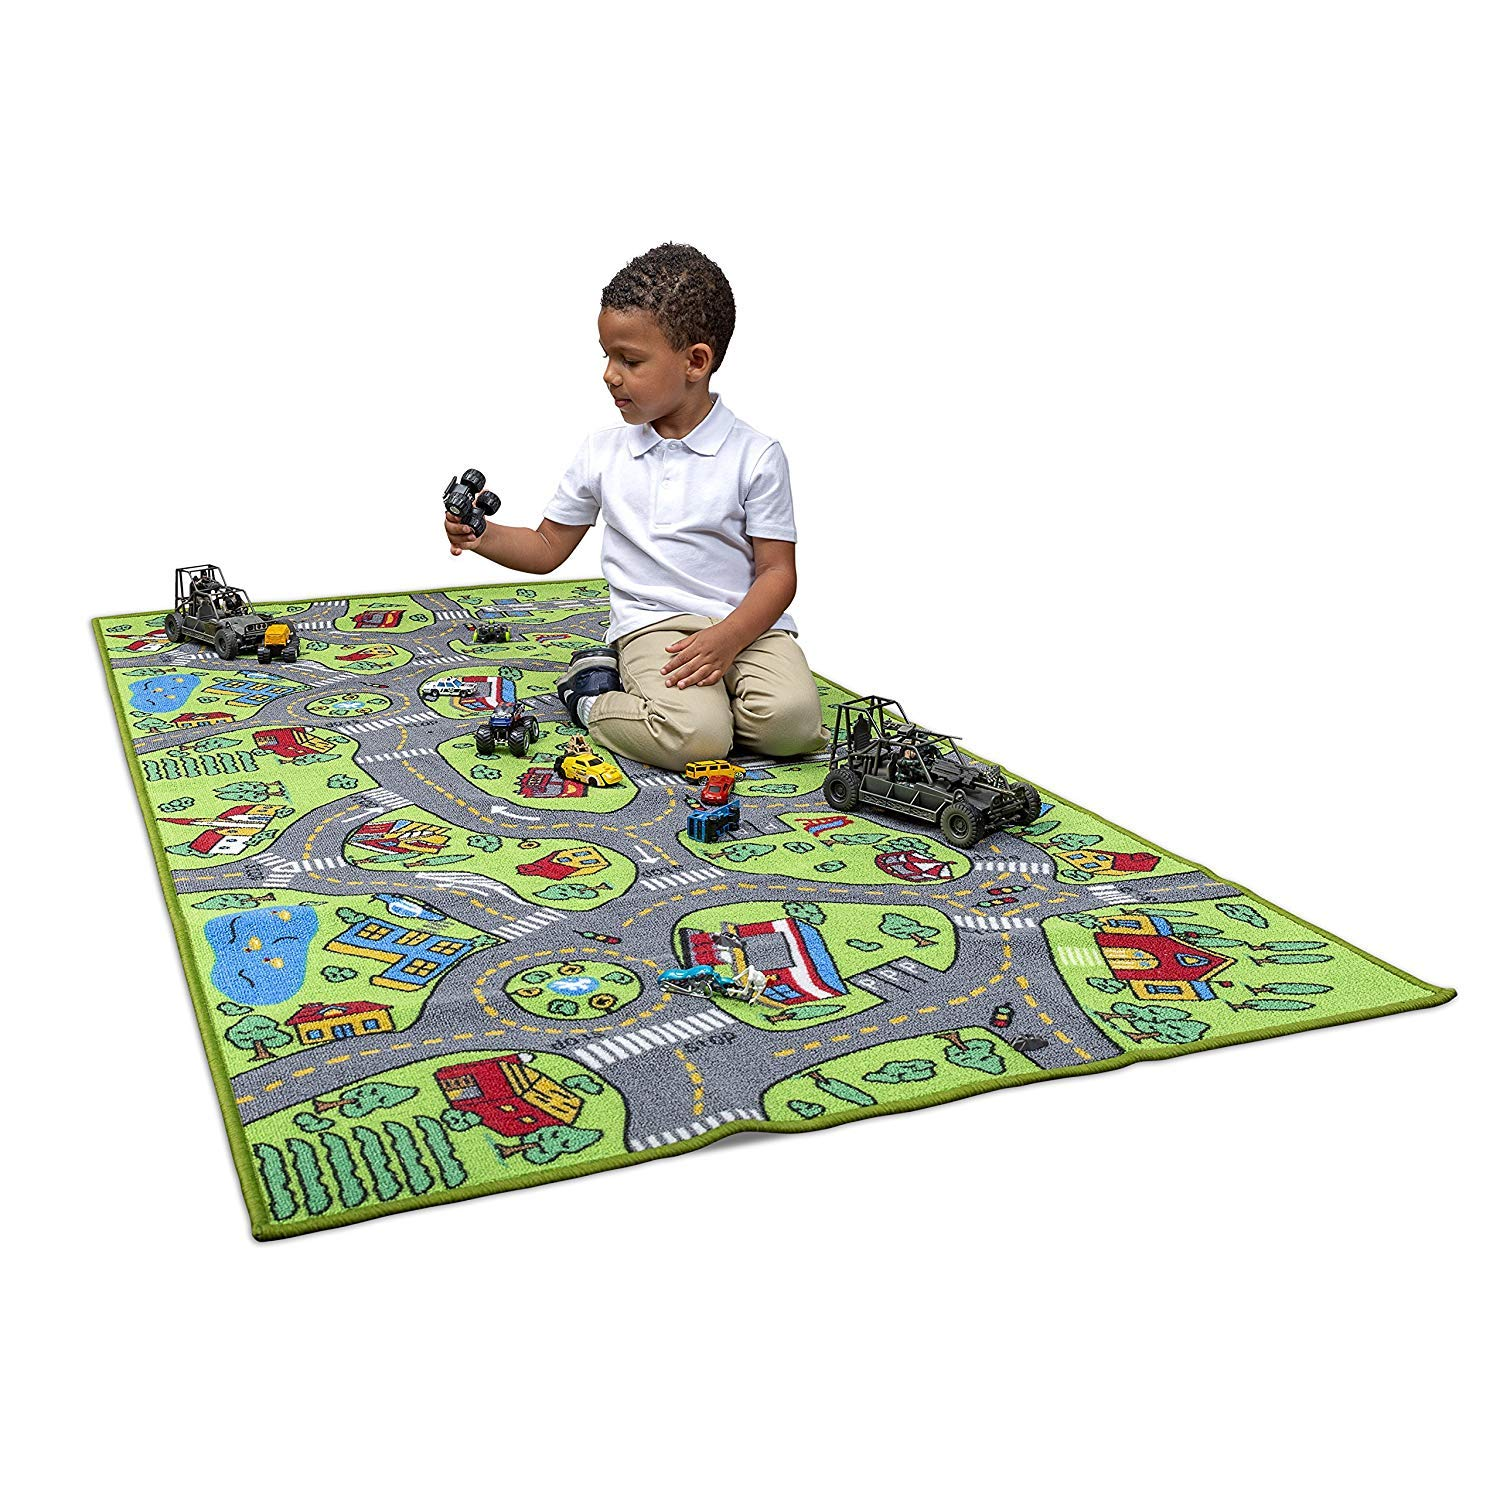 Kids Carpet Playmat City Life Extra Large - Learn & Have Fun Safe, Children's Educational, Road Traffic System, Multi Color Activity Centerp Play Mat! Great For Playing With Cars For Bedroom Playroom by Amy & Delle